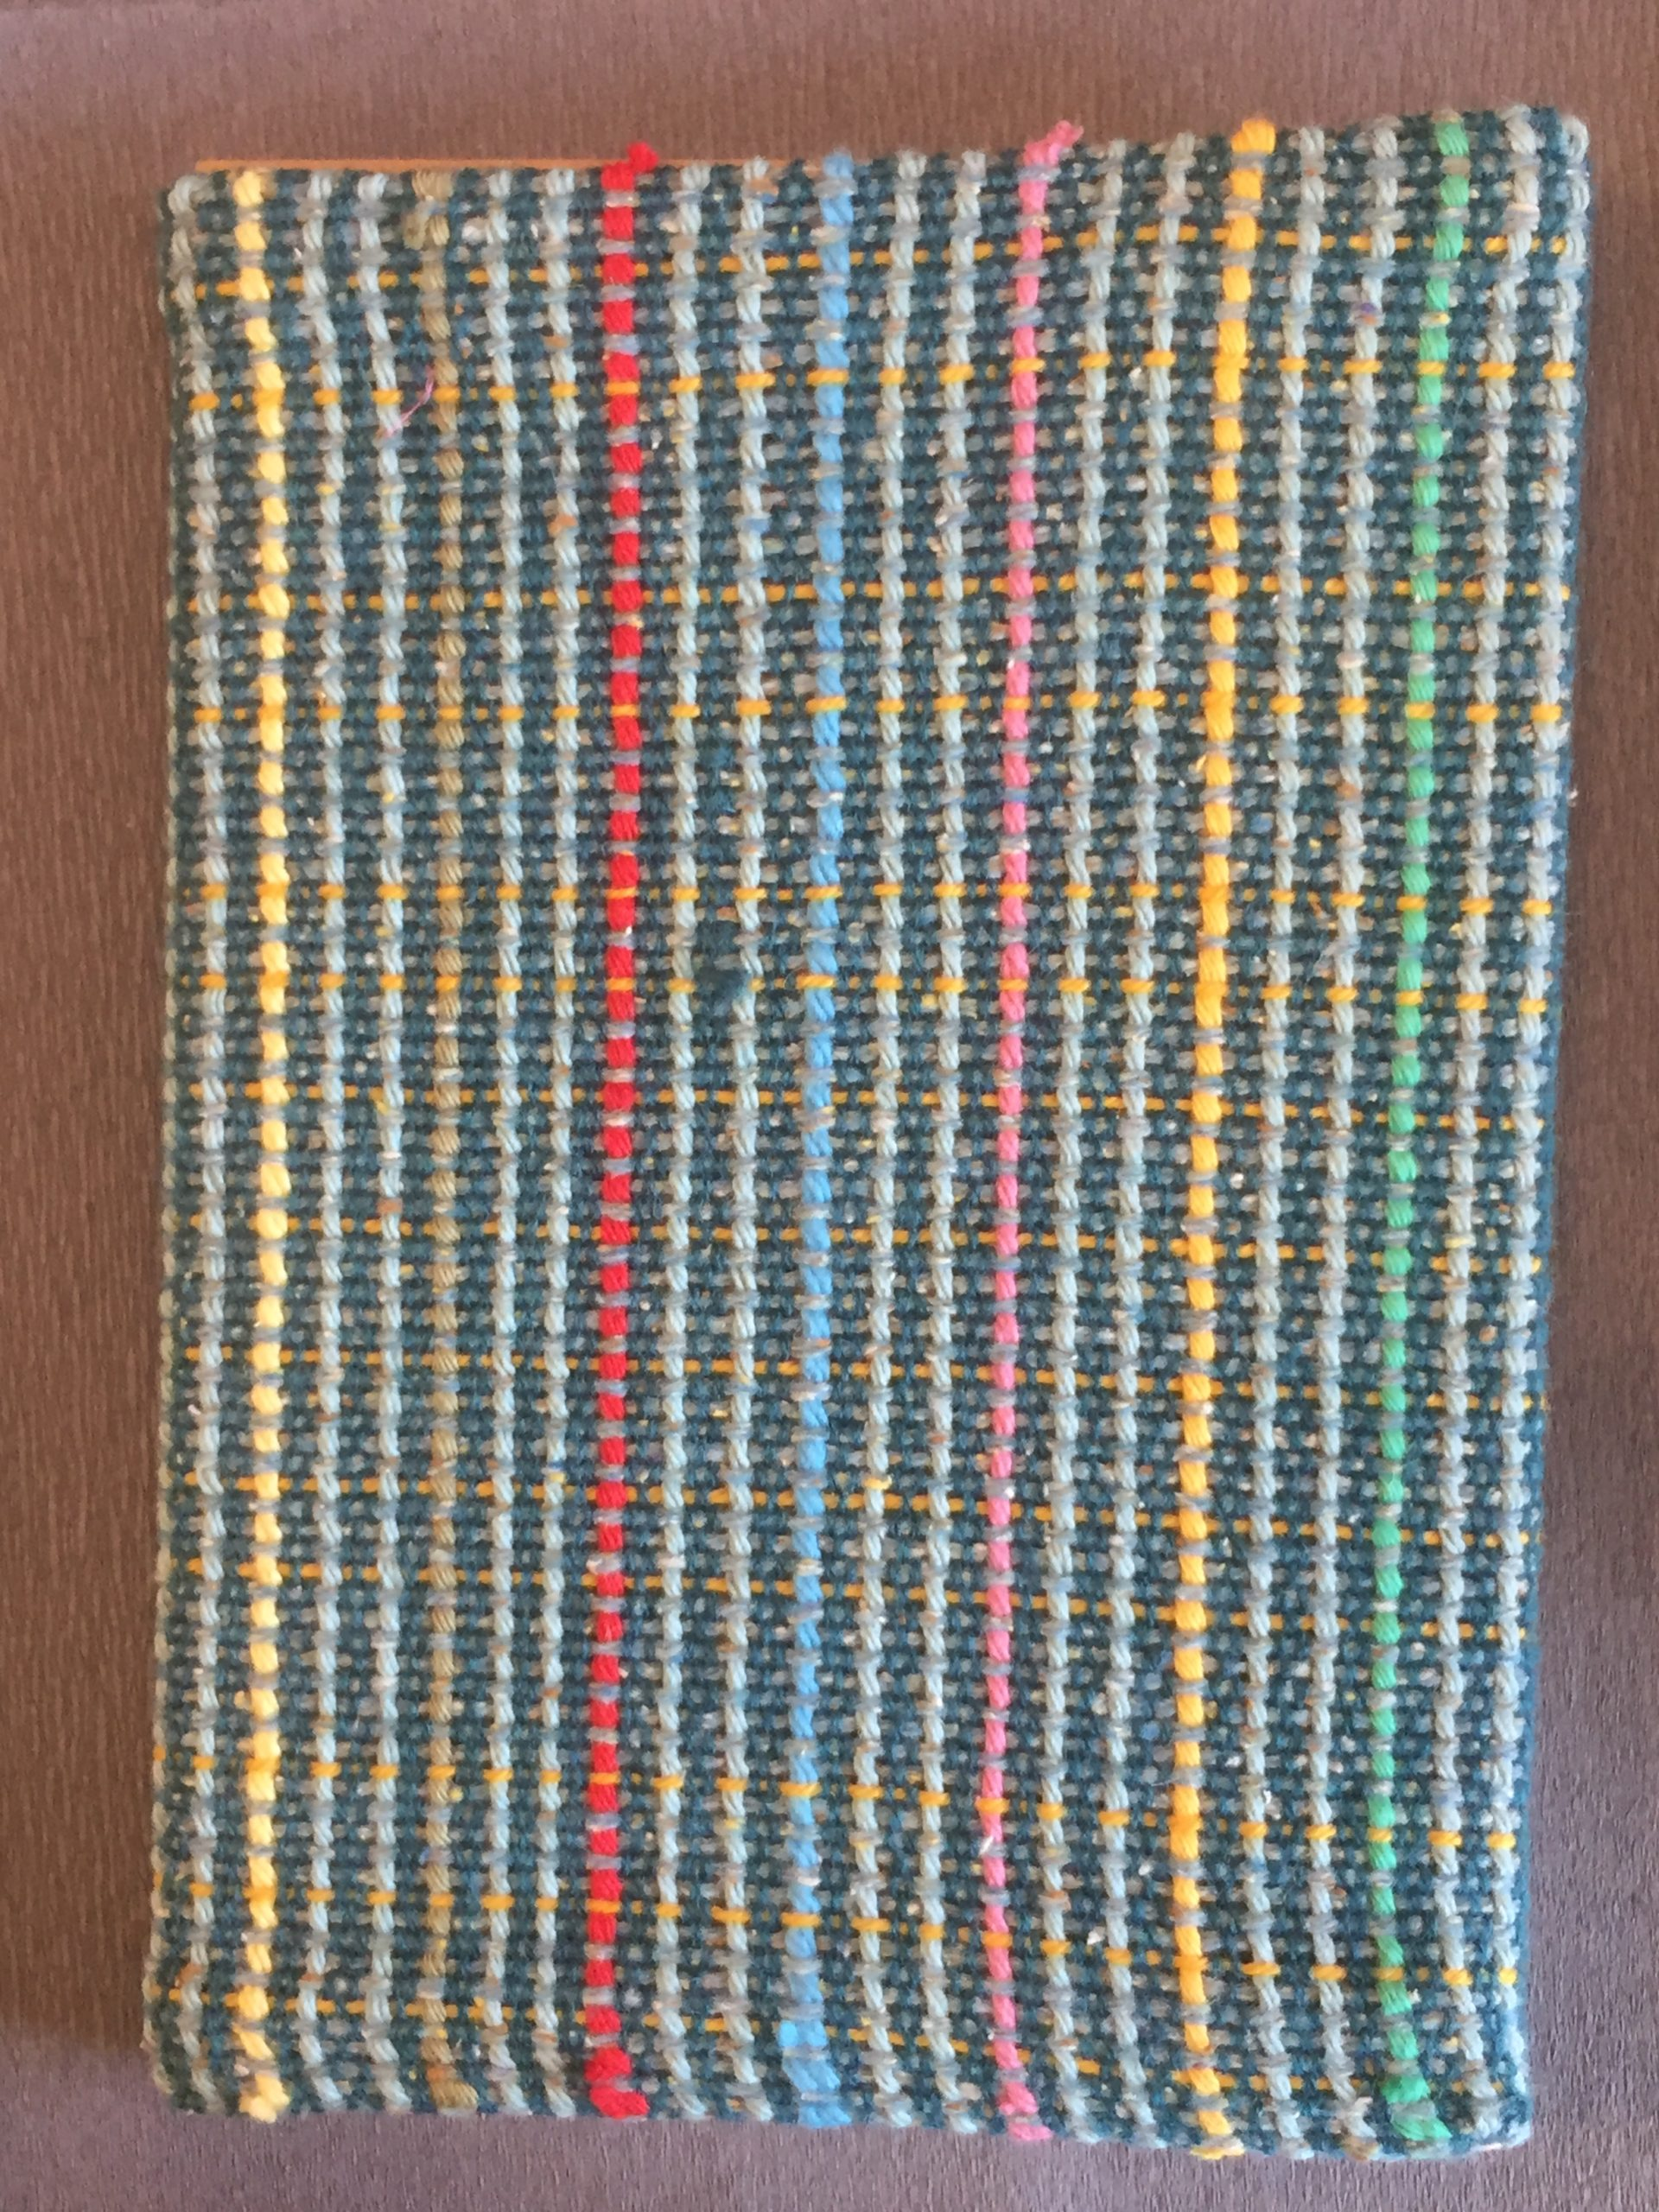 Handwoven Covered Sketchbook 26€